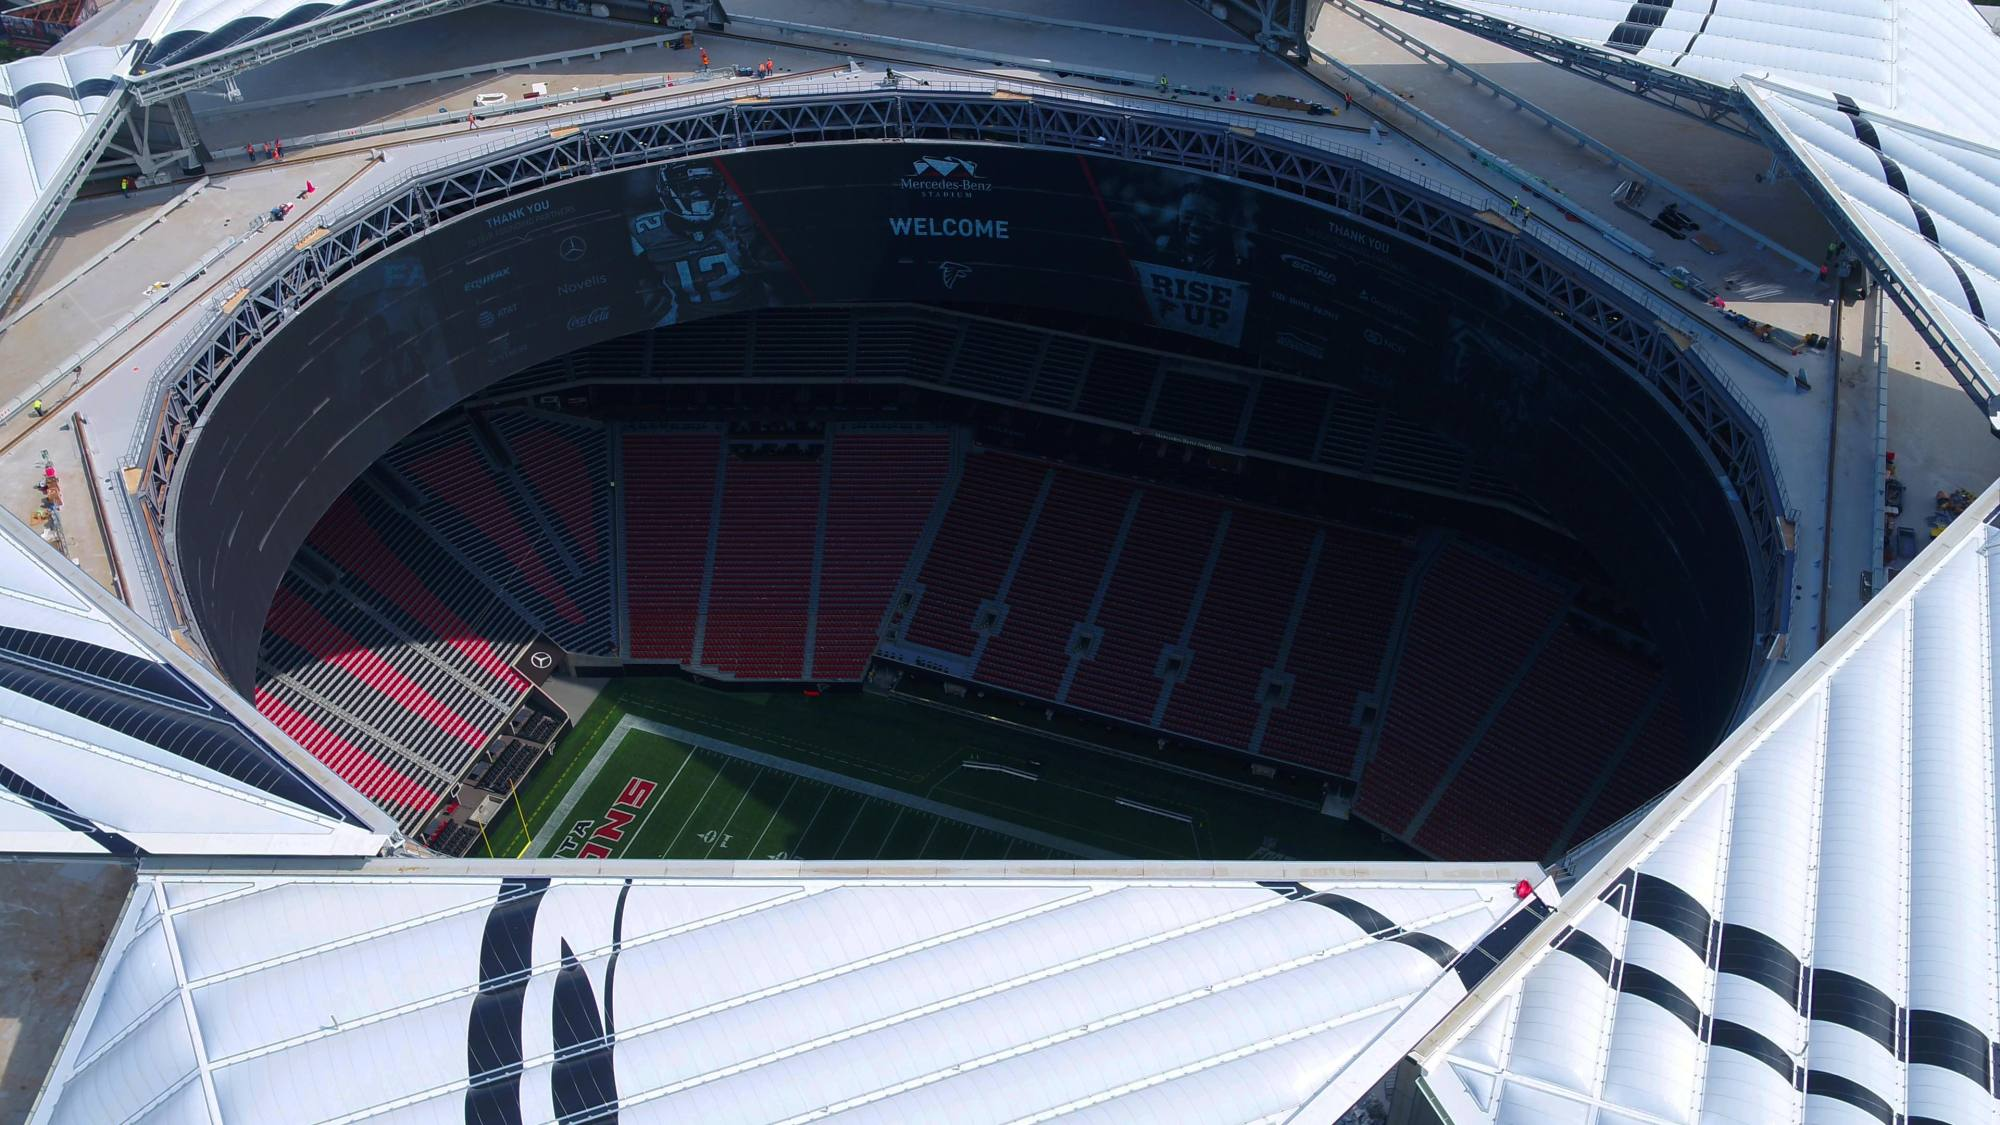 hight resolution of mercedes benz stadium officials announce sunday s falcons vs packers game will be team s first open air game since 1991 in atlanta weather permitting